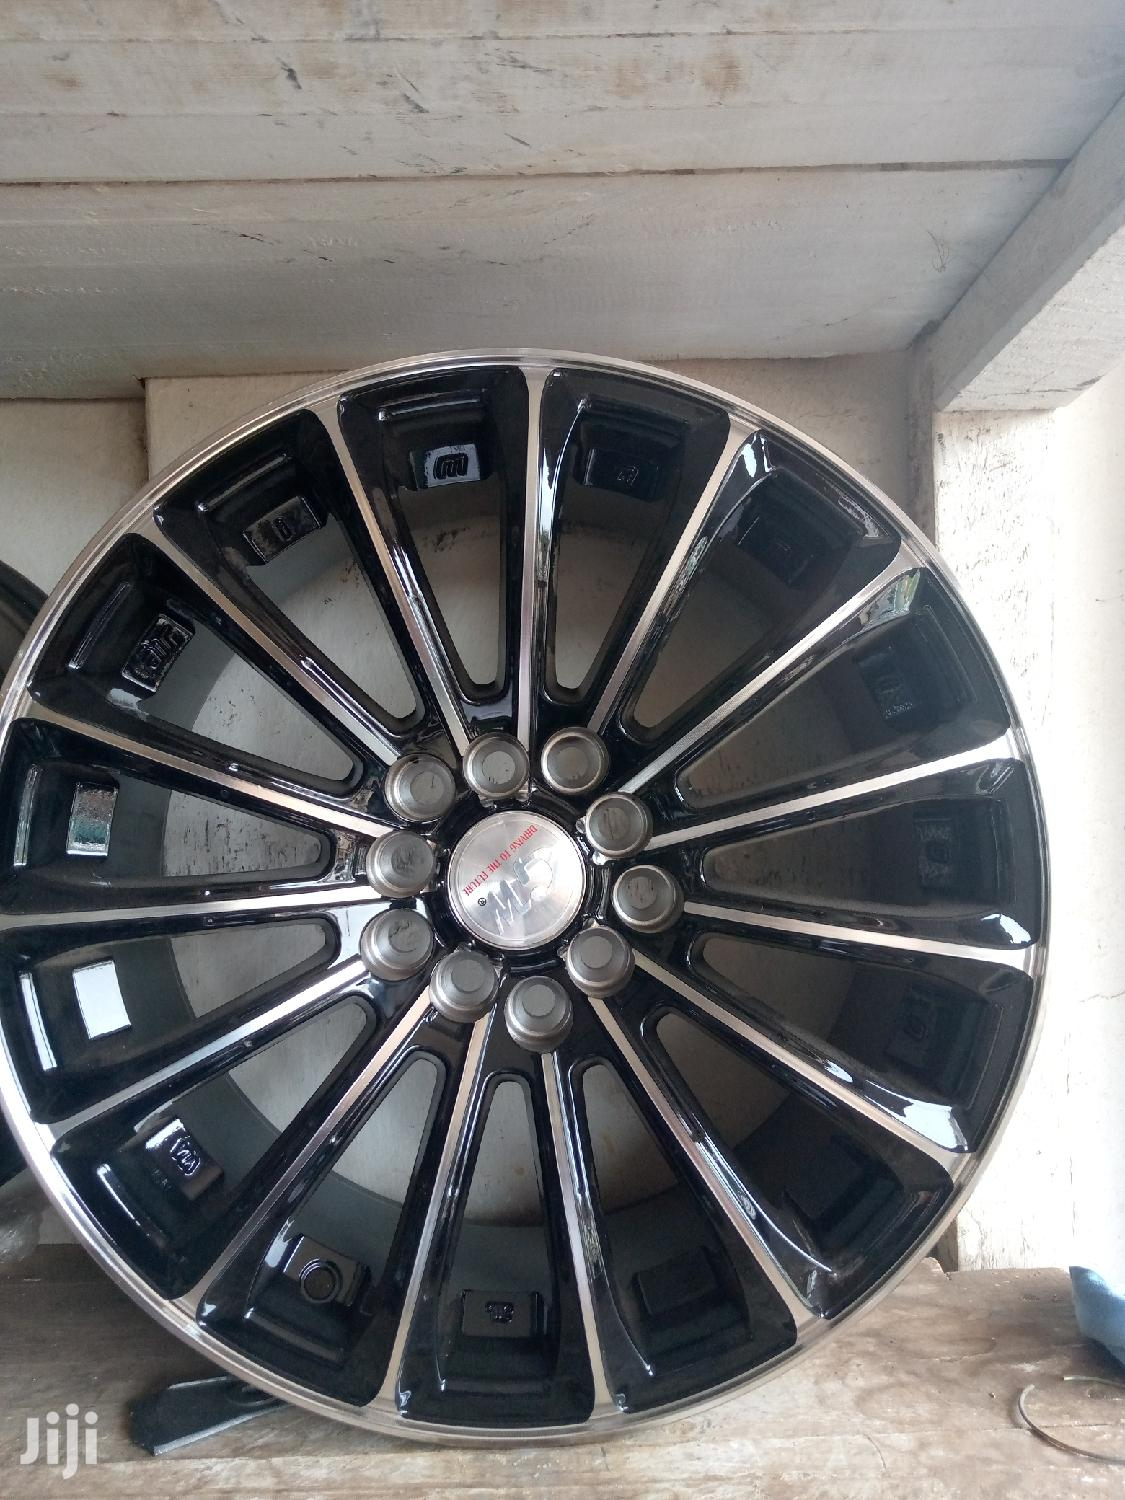 Rims of All Cars